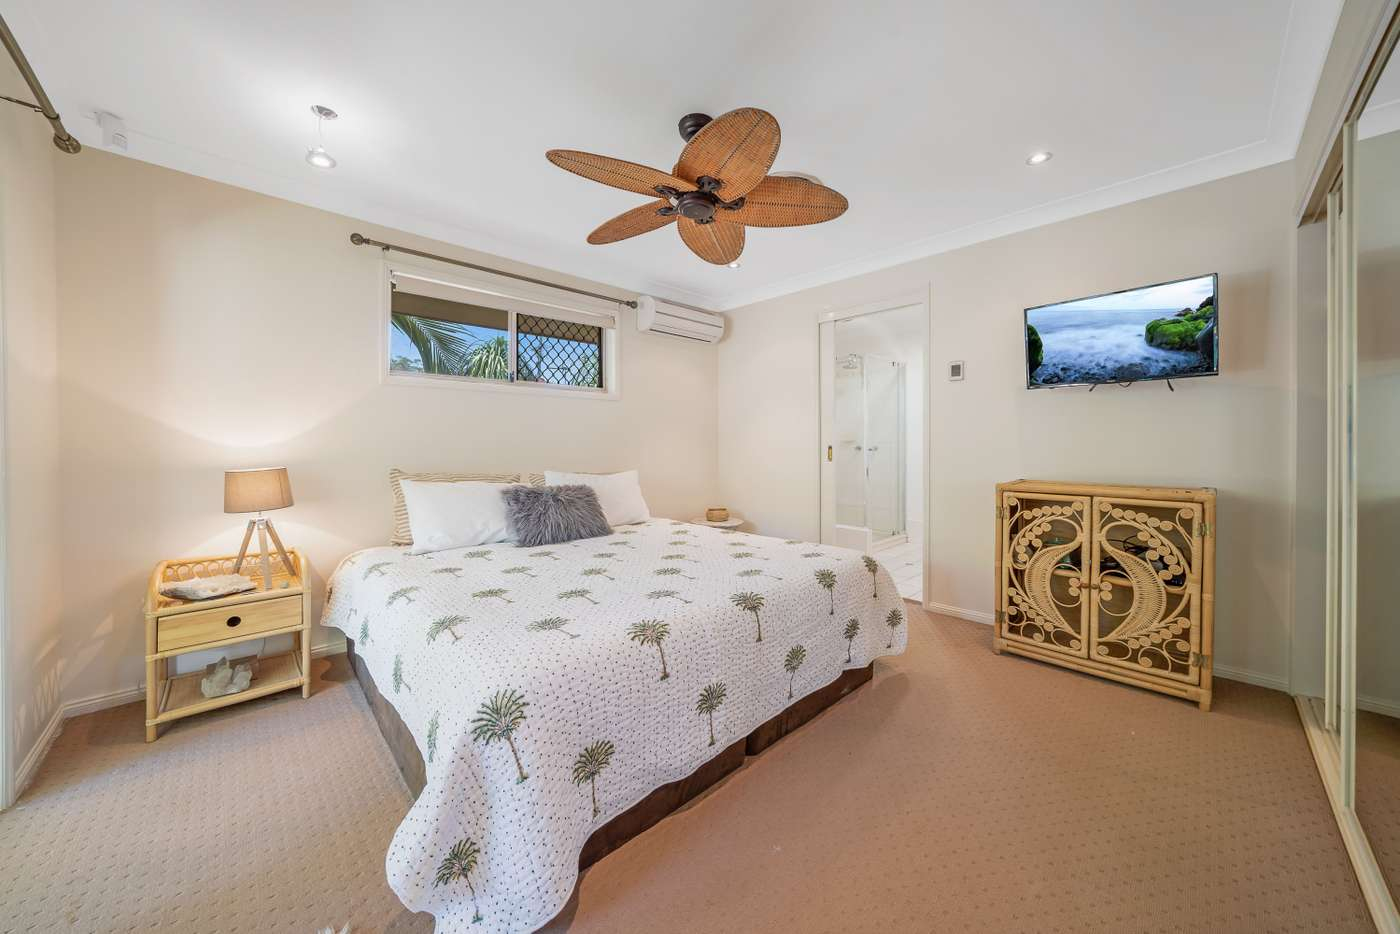 Sixth view of Homely house listing, 60 Jilbard Drive, Springwood QLD 4127